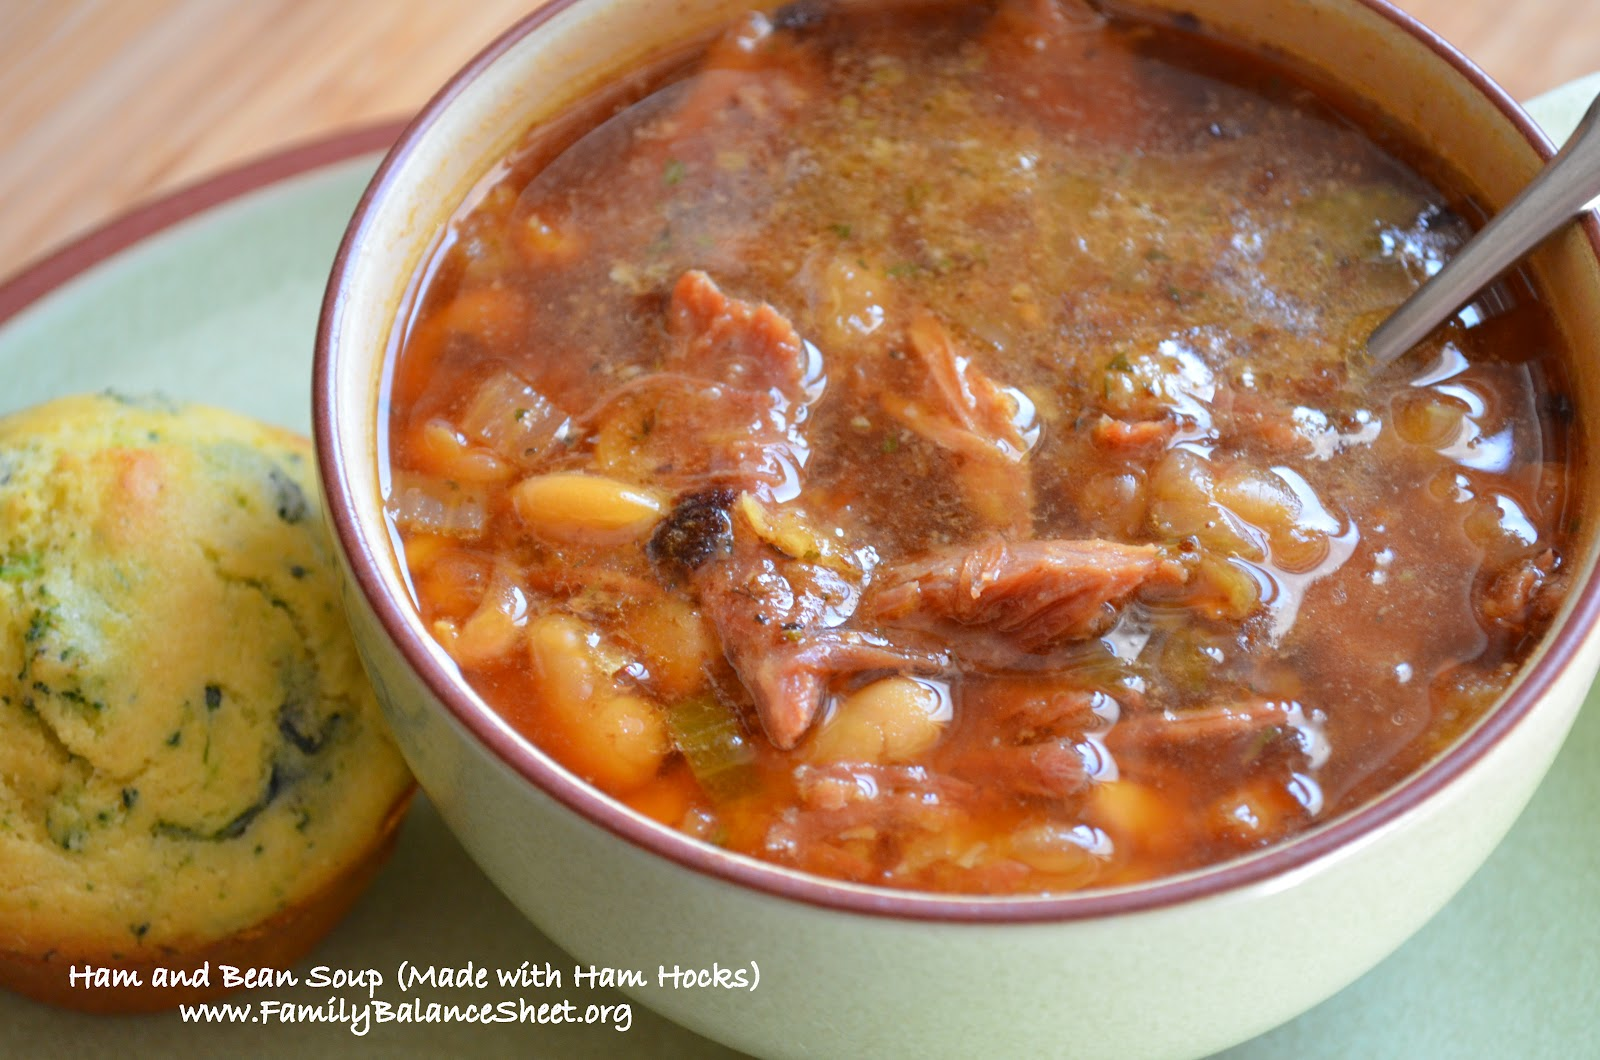 Canned Pinto Beans And Ham Hock Recipe